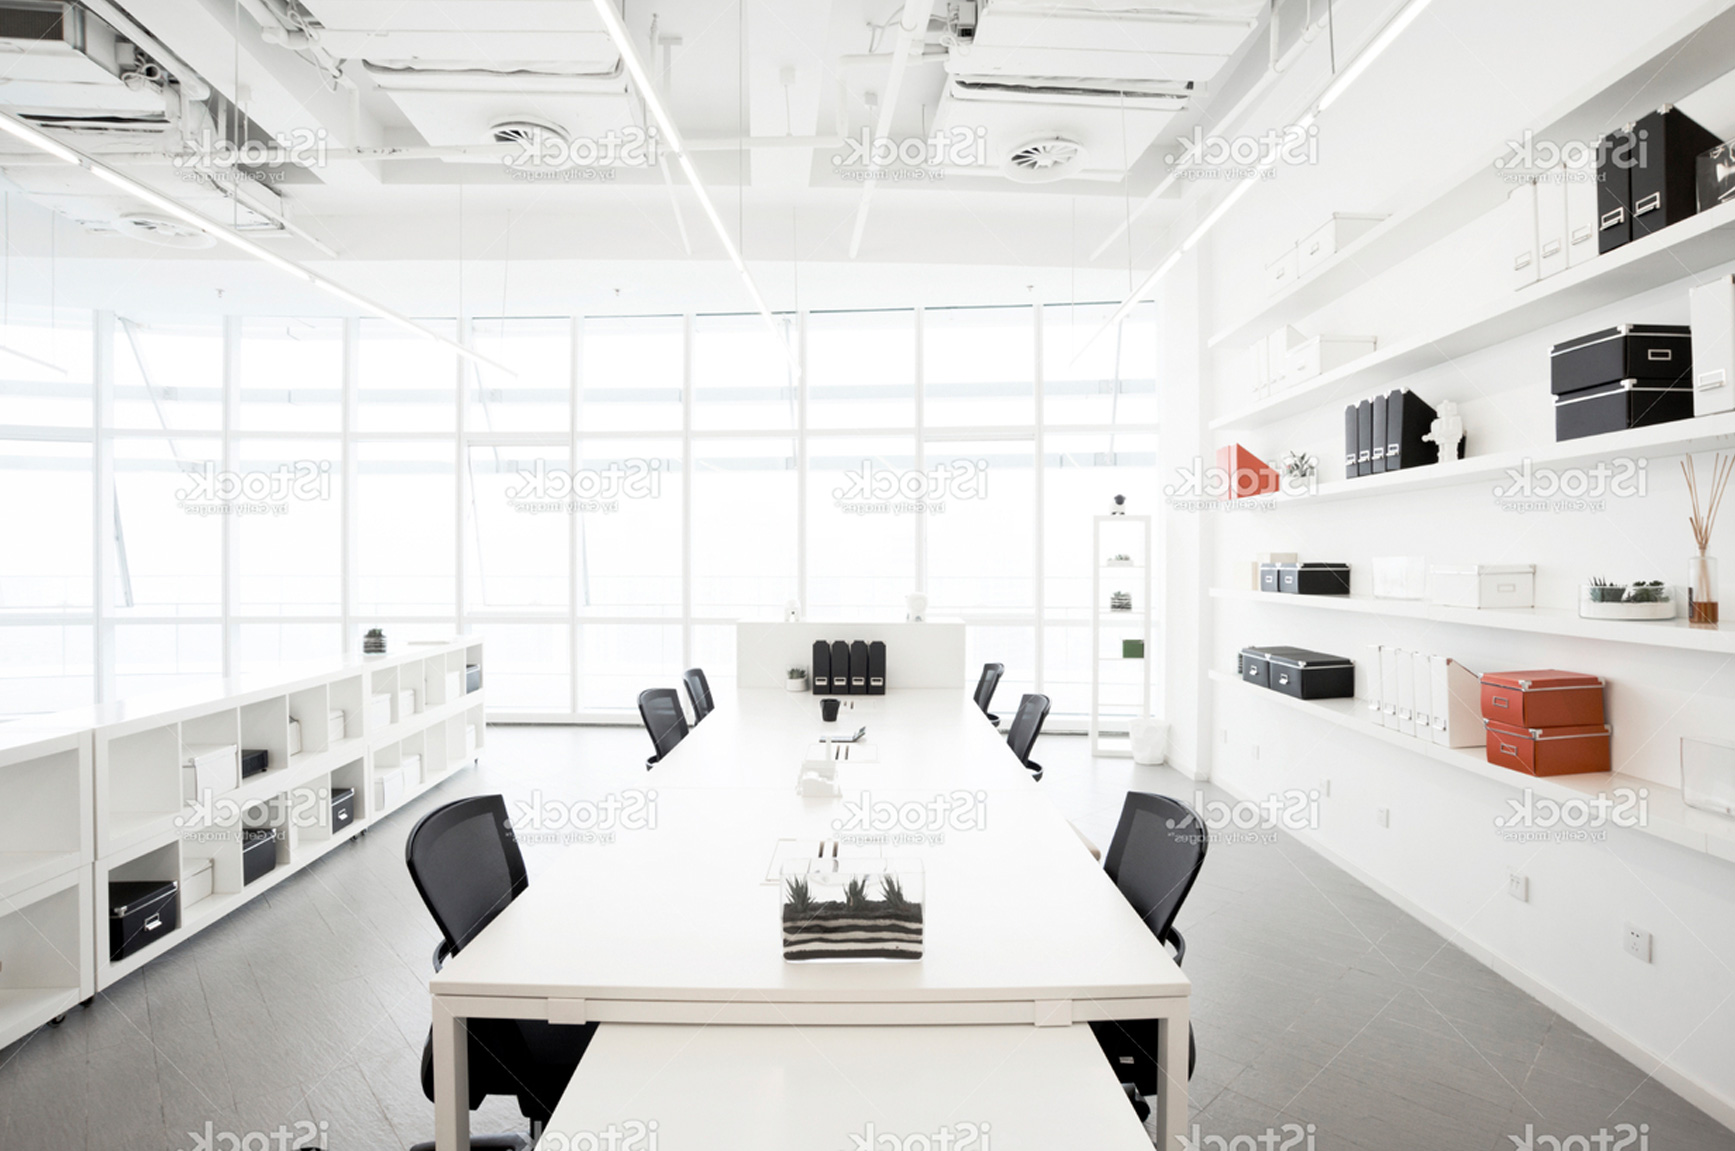 Boutique Serviced Offices